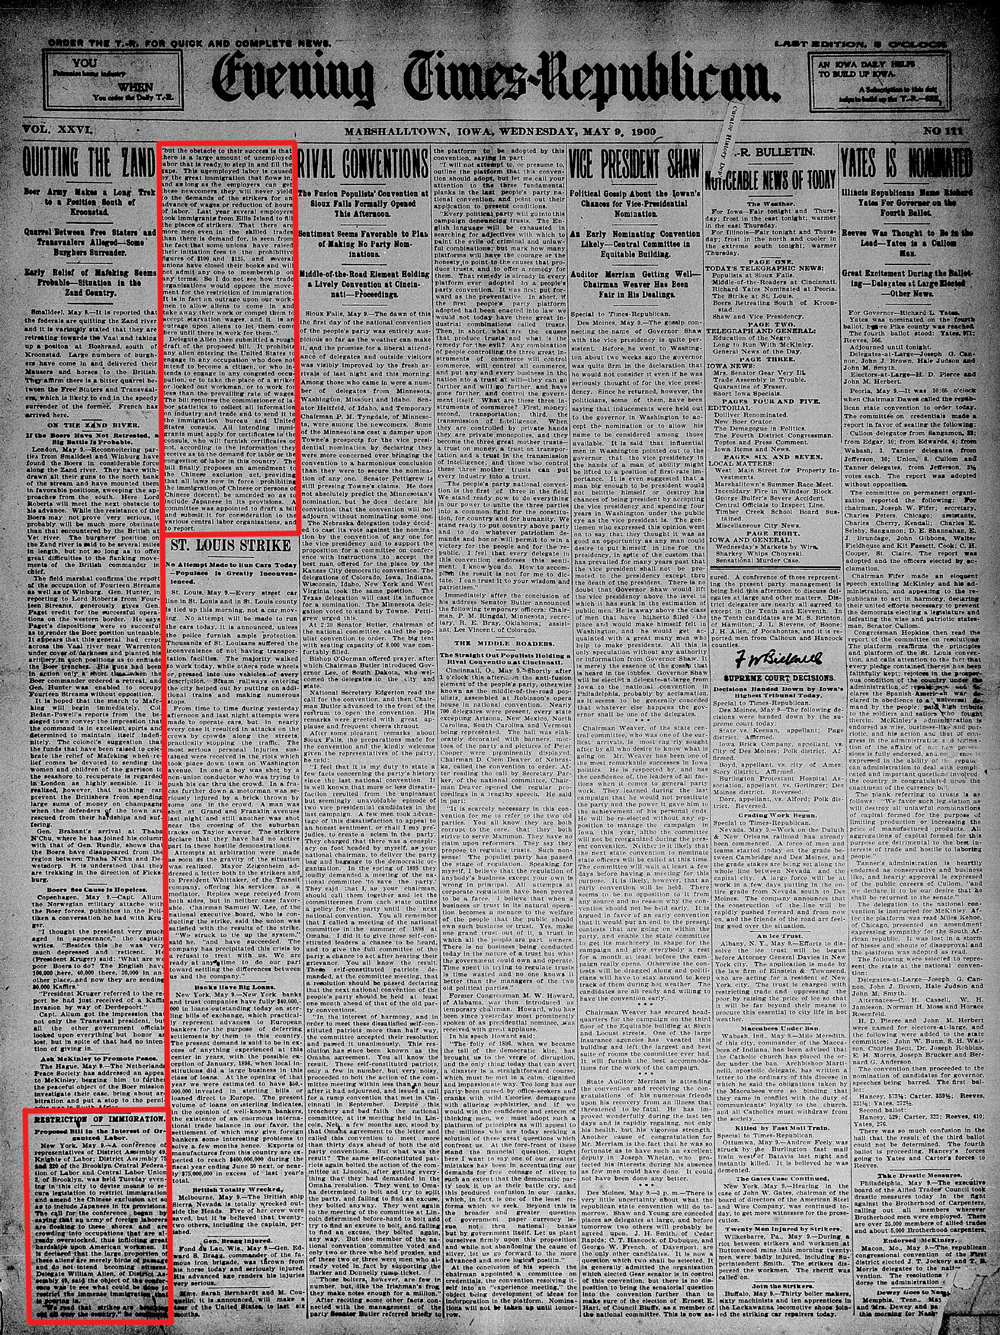 Newspaper article that appeared in the Marshalltown Times Republican in 1900.